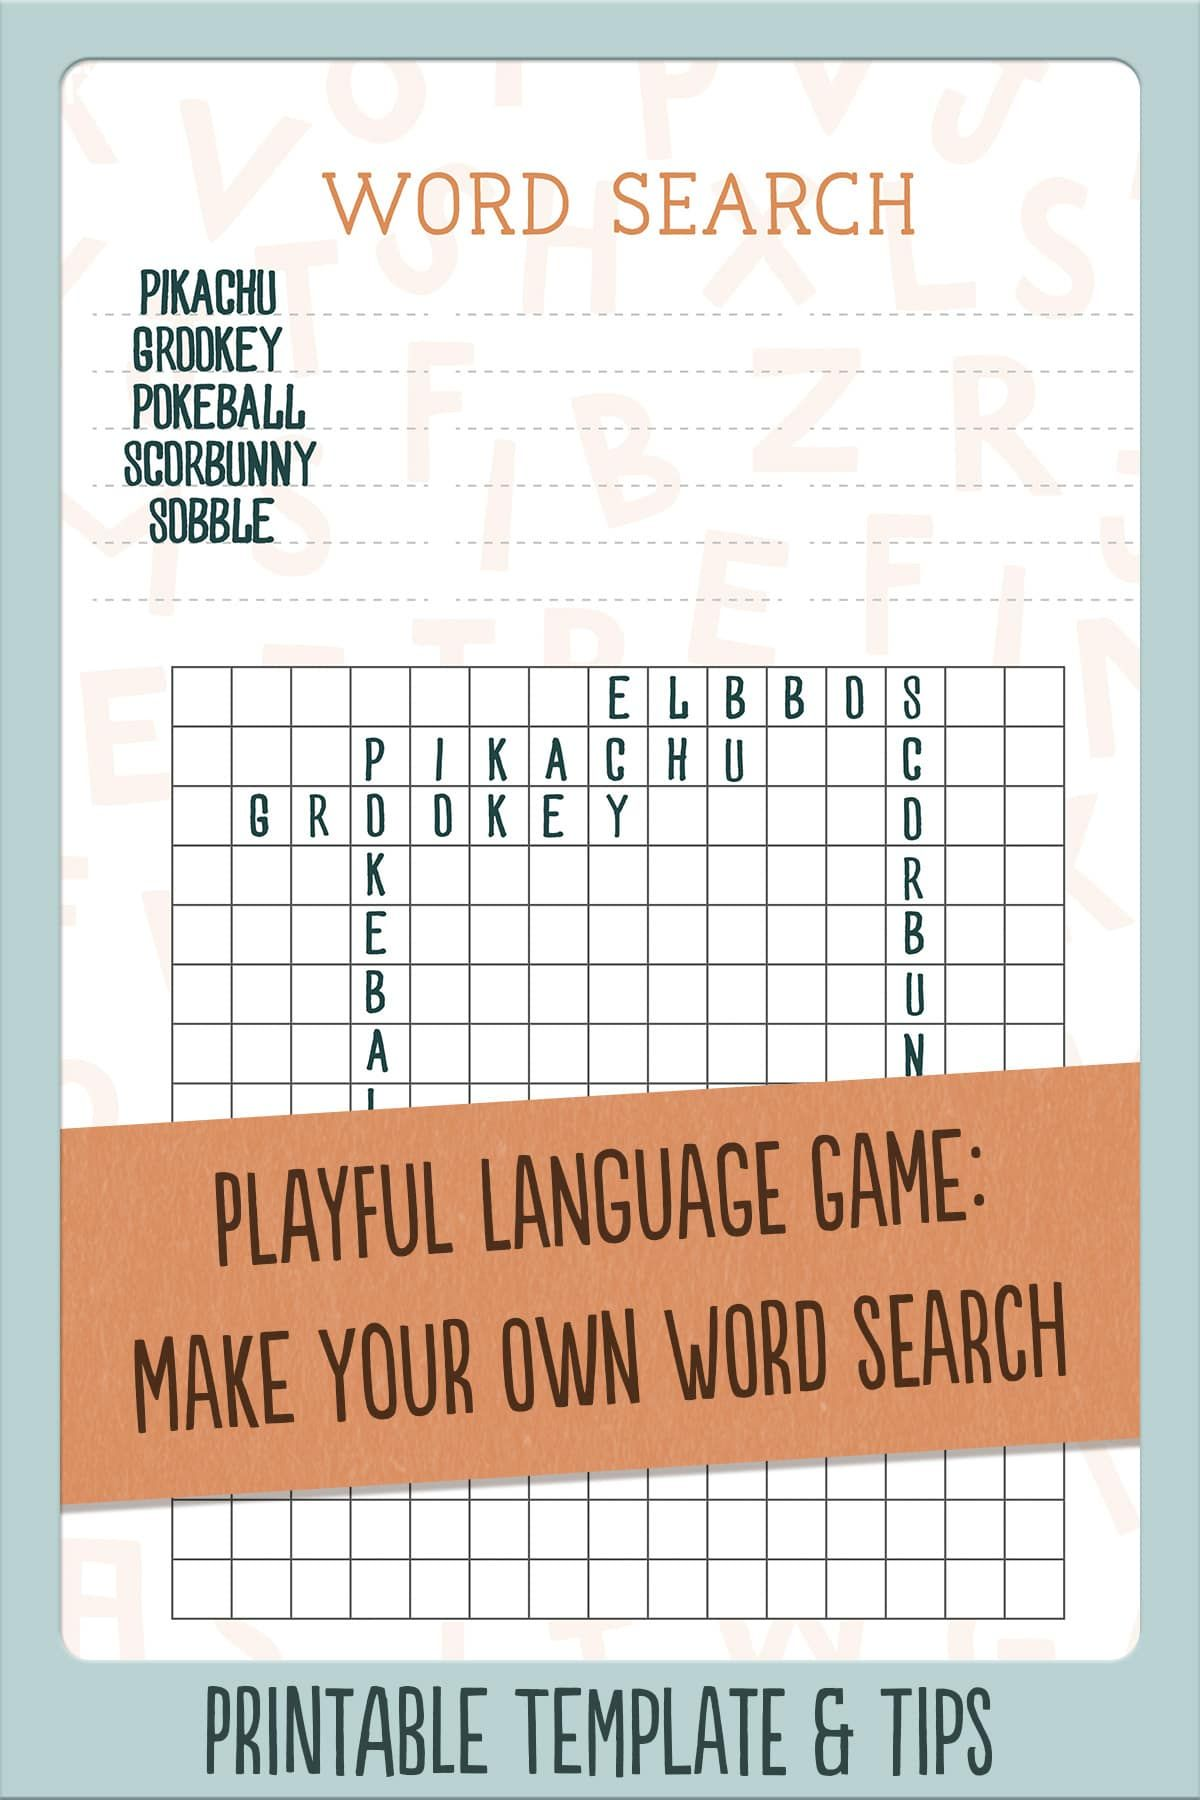 Freebie Blank Word Search Grids Downloadable Printable Blank Grids For Kids To Engage Their Creativity Kids Fun Learning Language Curriculum Grid Puzzles